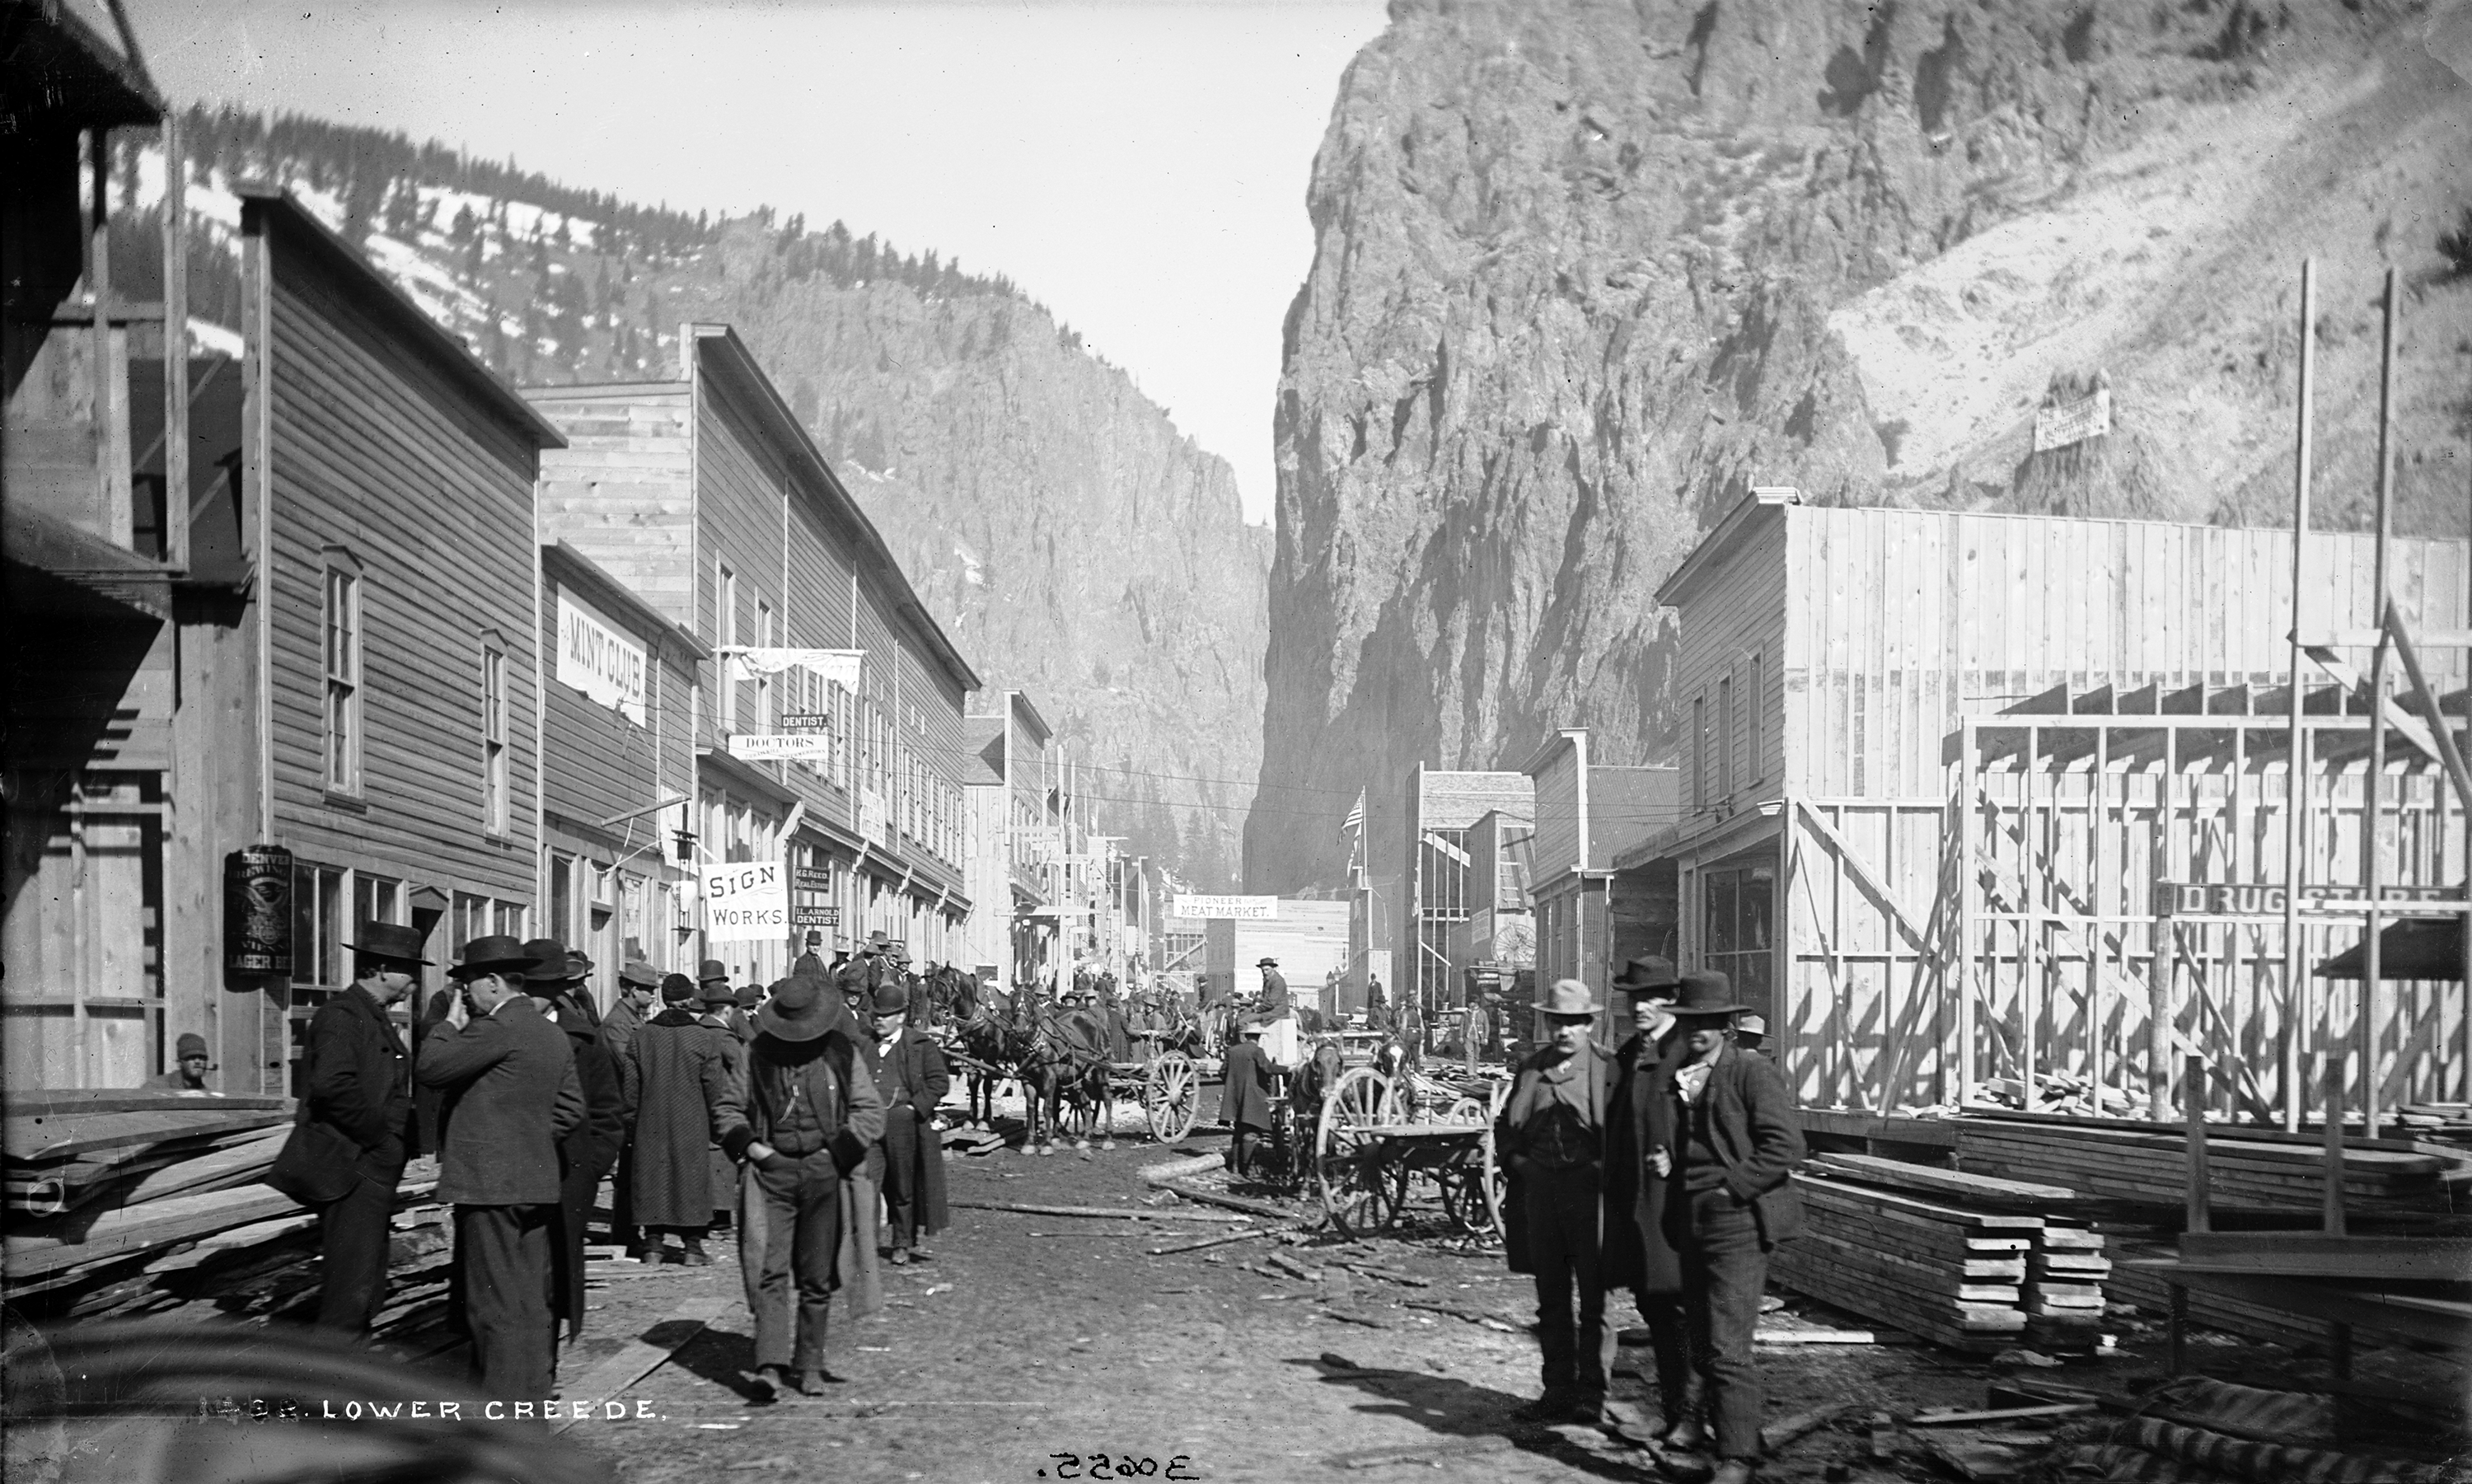 Photo of a street in downtown Creede, Colorado, in the 1890s. Several wooden buildings line each side of the dirt street, while other buildings are under construction and pallets of building materials sit on the sides of the street. Men dressed in suits and hats are seen walking and standing around talking with others as horse-drawn wagons traverse the road.